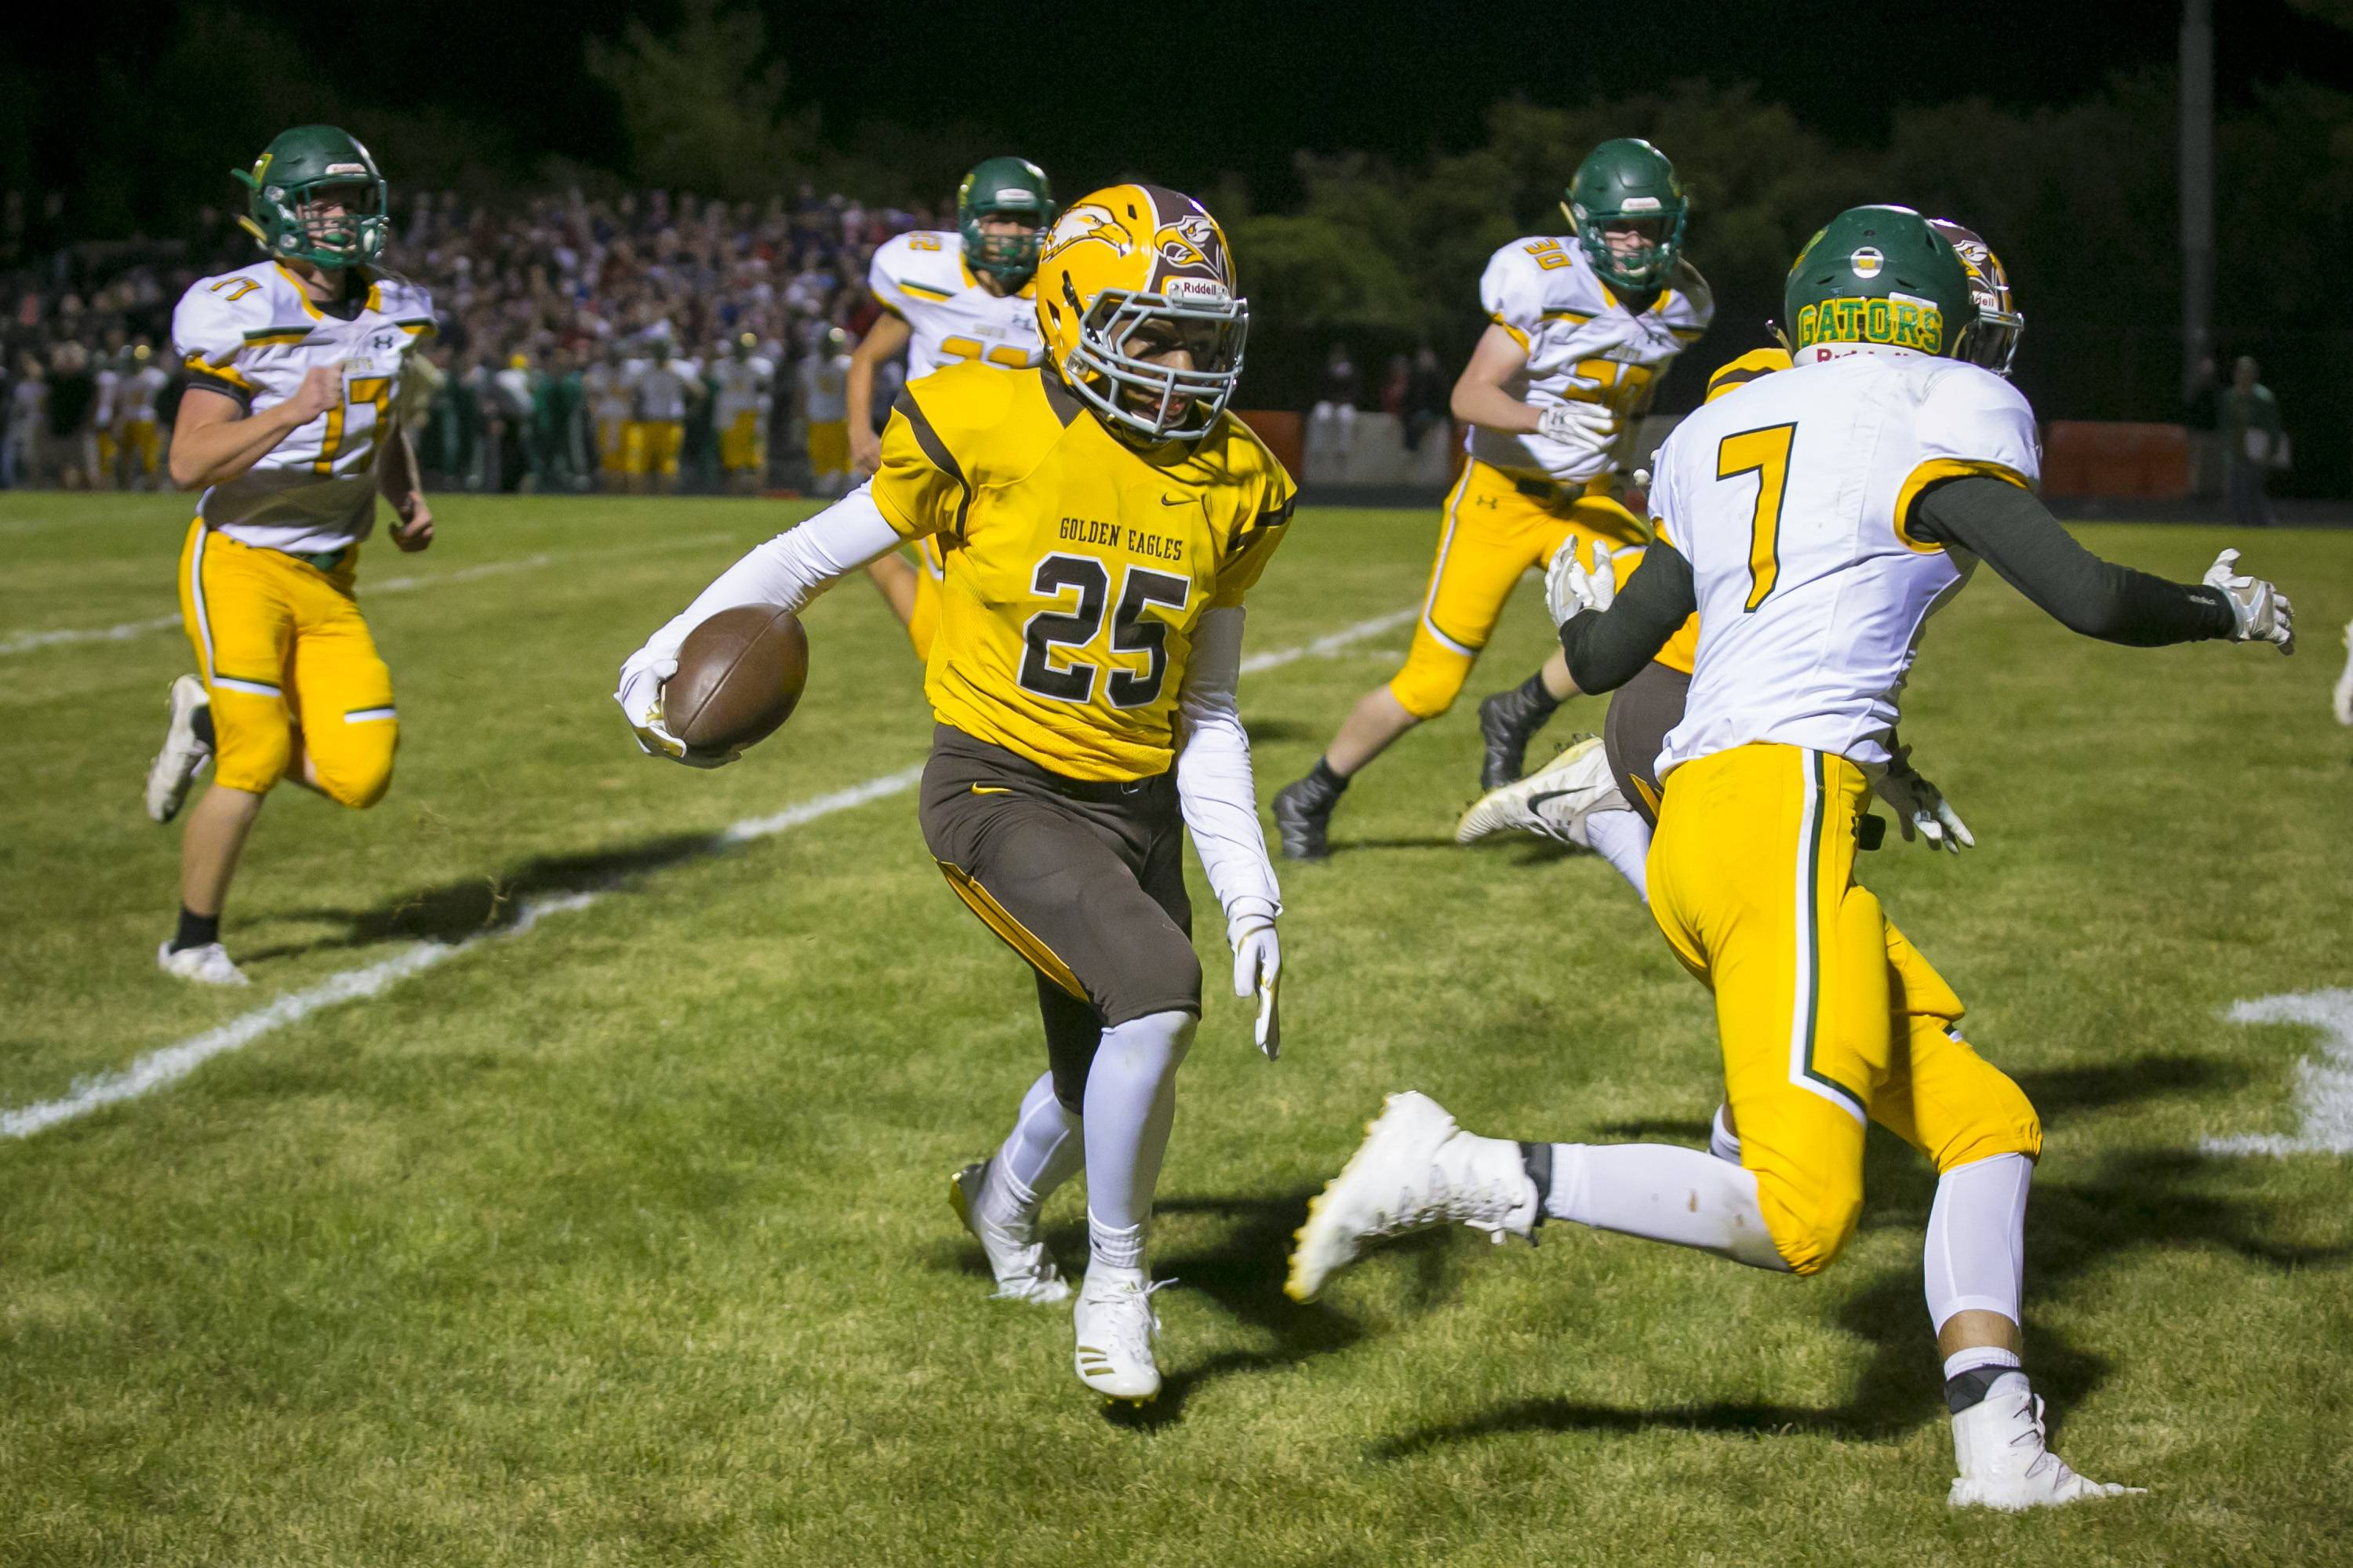 Jacobs defensive back Jukauri Bland (25) jukes past Crystal Lake South's Blake Kuffel (7) for a touchdown Friday.